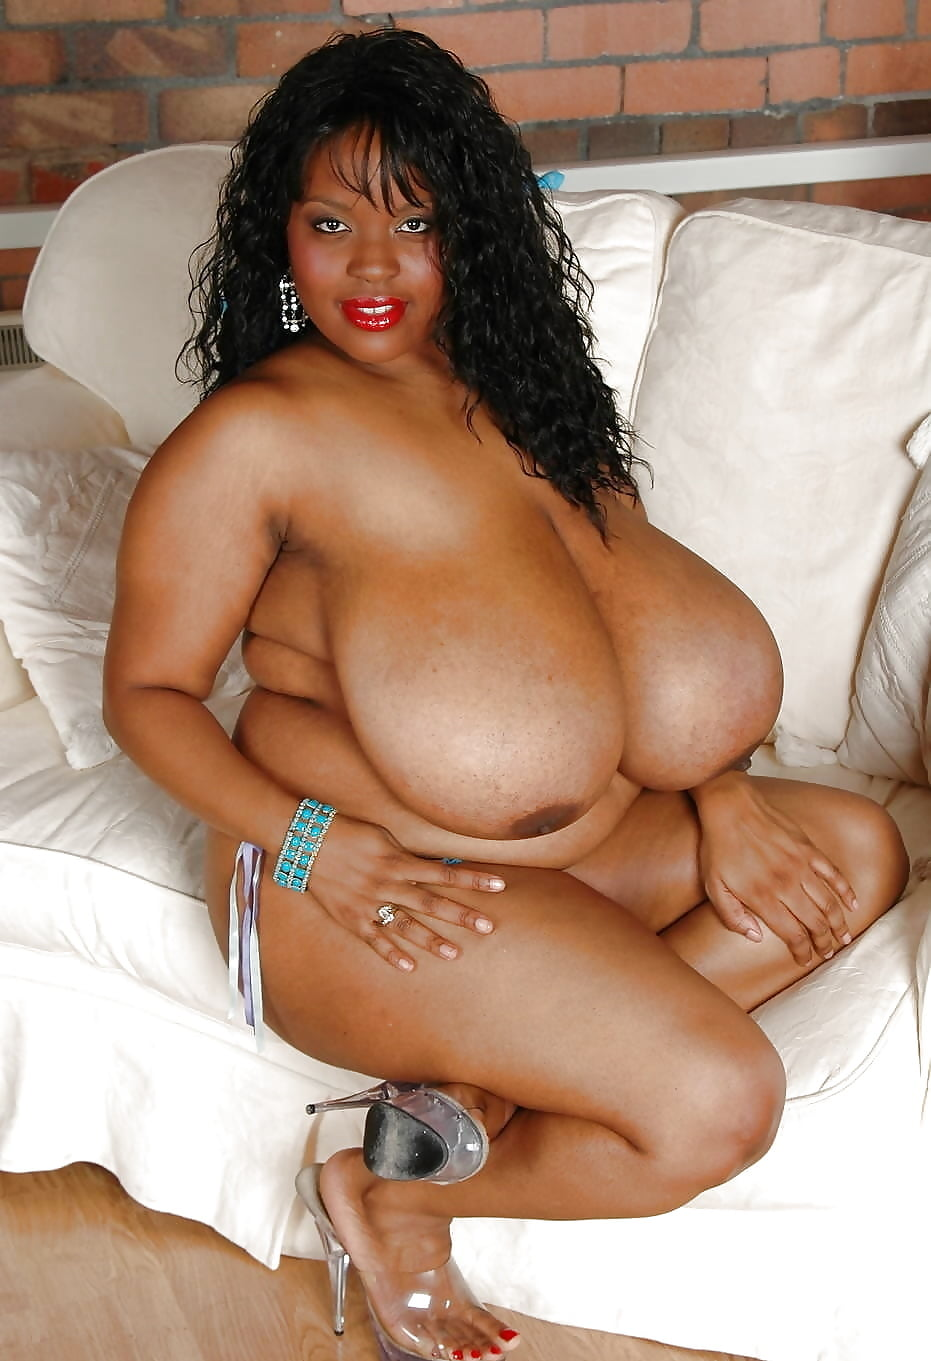 Porn fat black chicks with big boobs toe pussy pictures